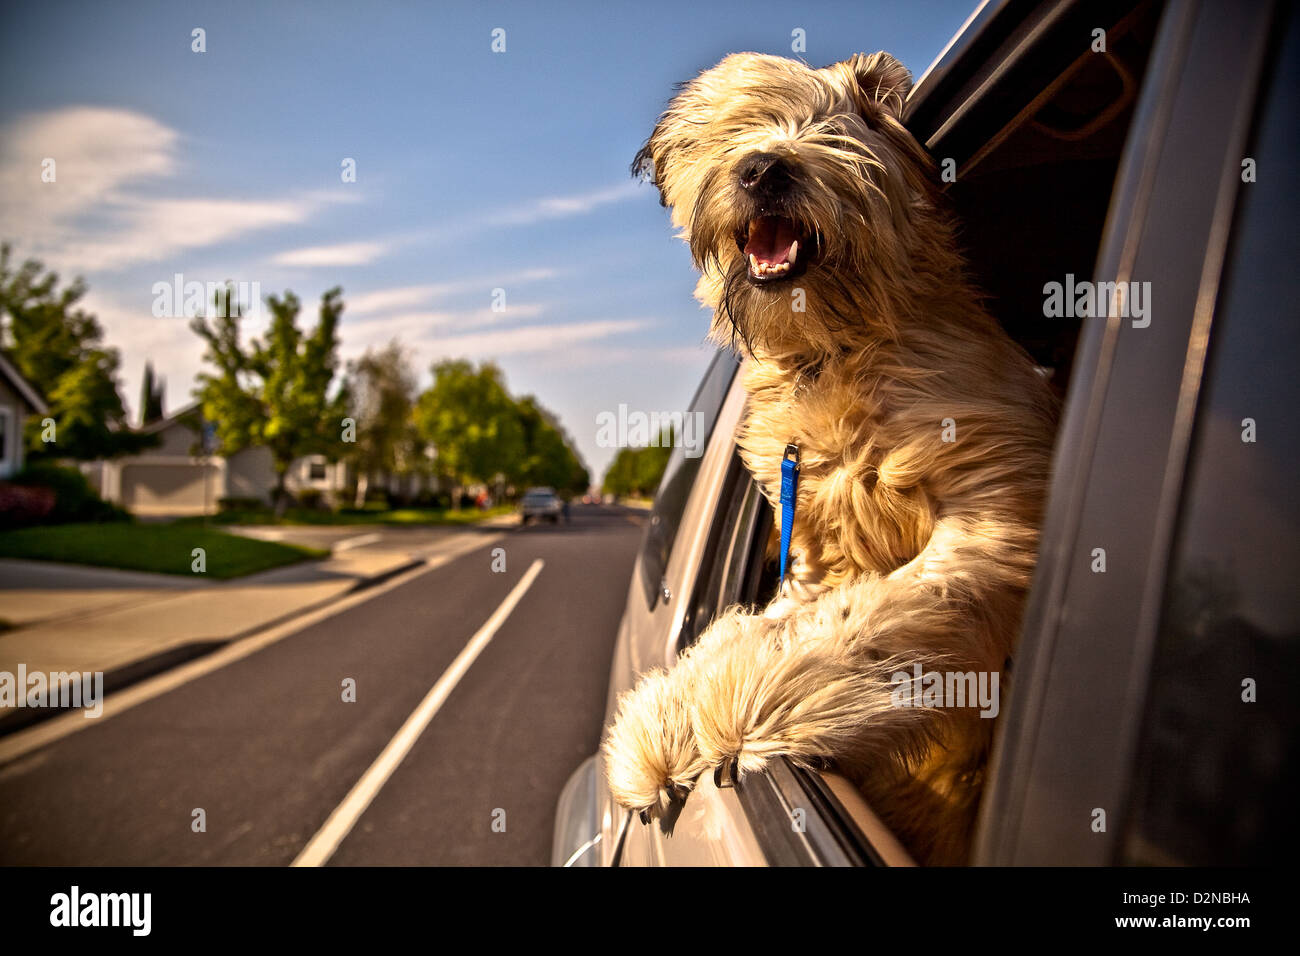 A dog hanging their head out a car window on a nice sunny day. - Stock Image